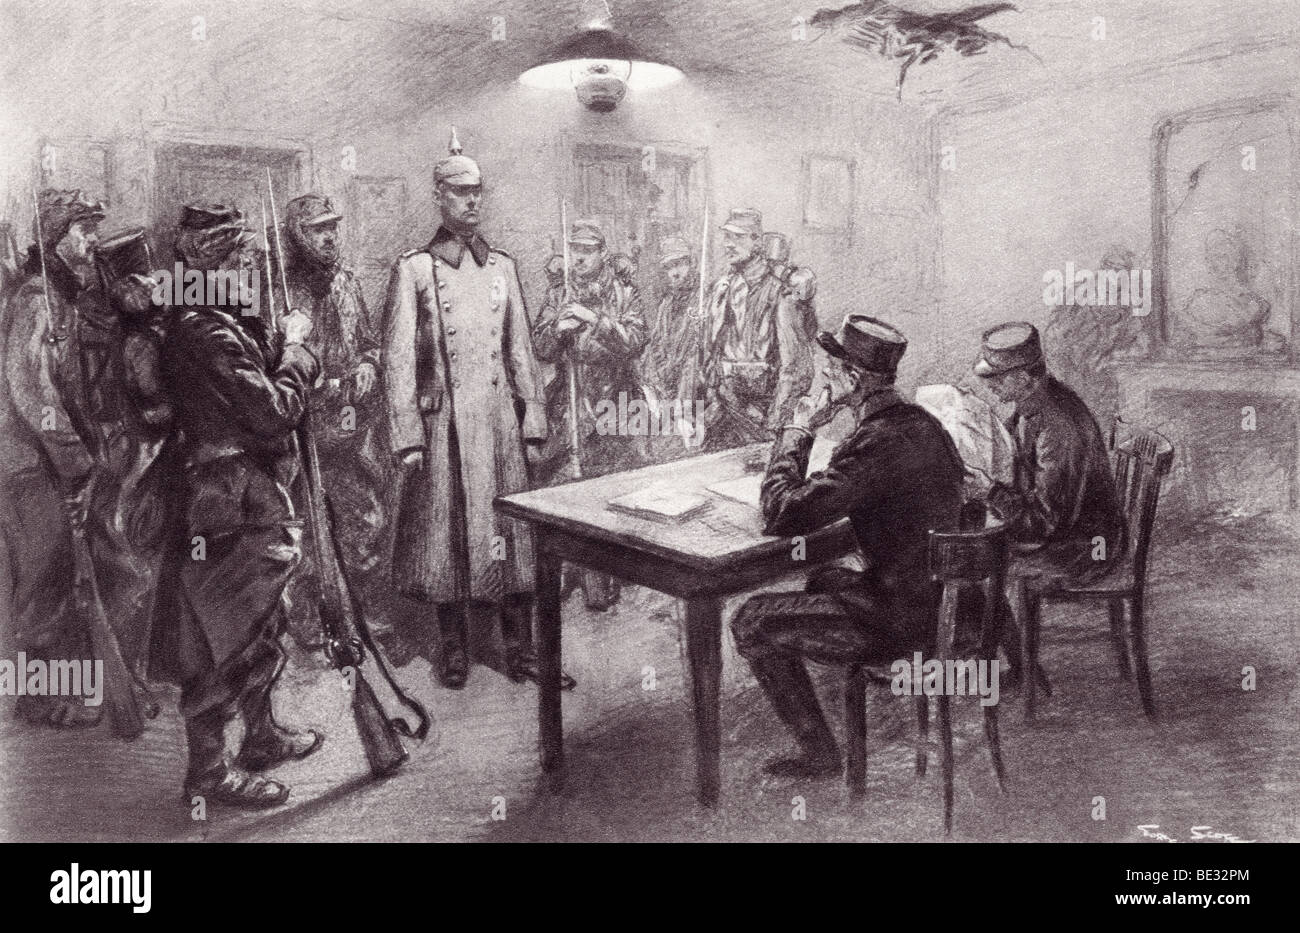 A captured German officer being examined by members of French general staff during World War I. - Stock Image